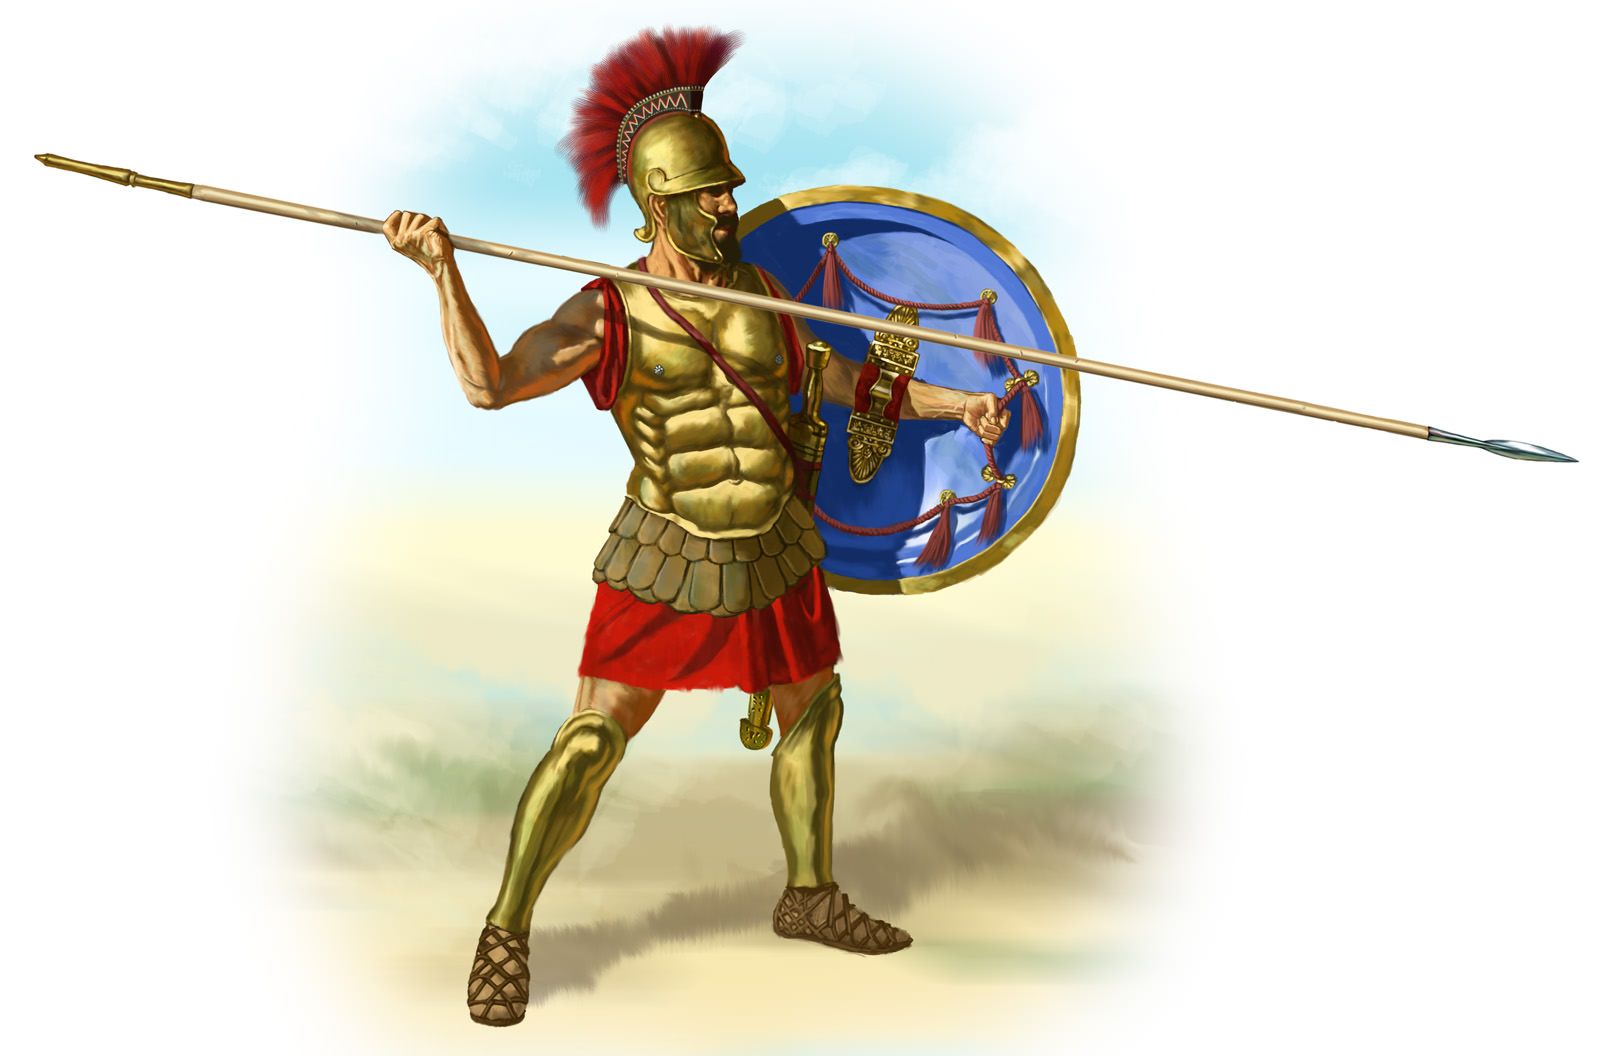 Modern illustration of a 4th century BCE Greek hoplite .